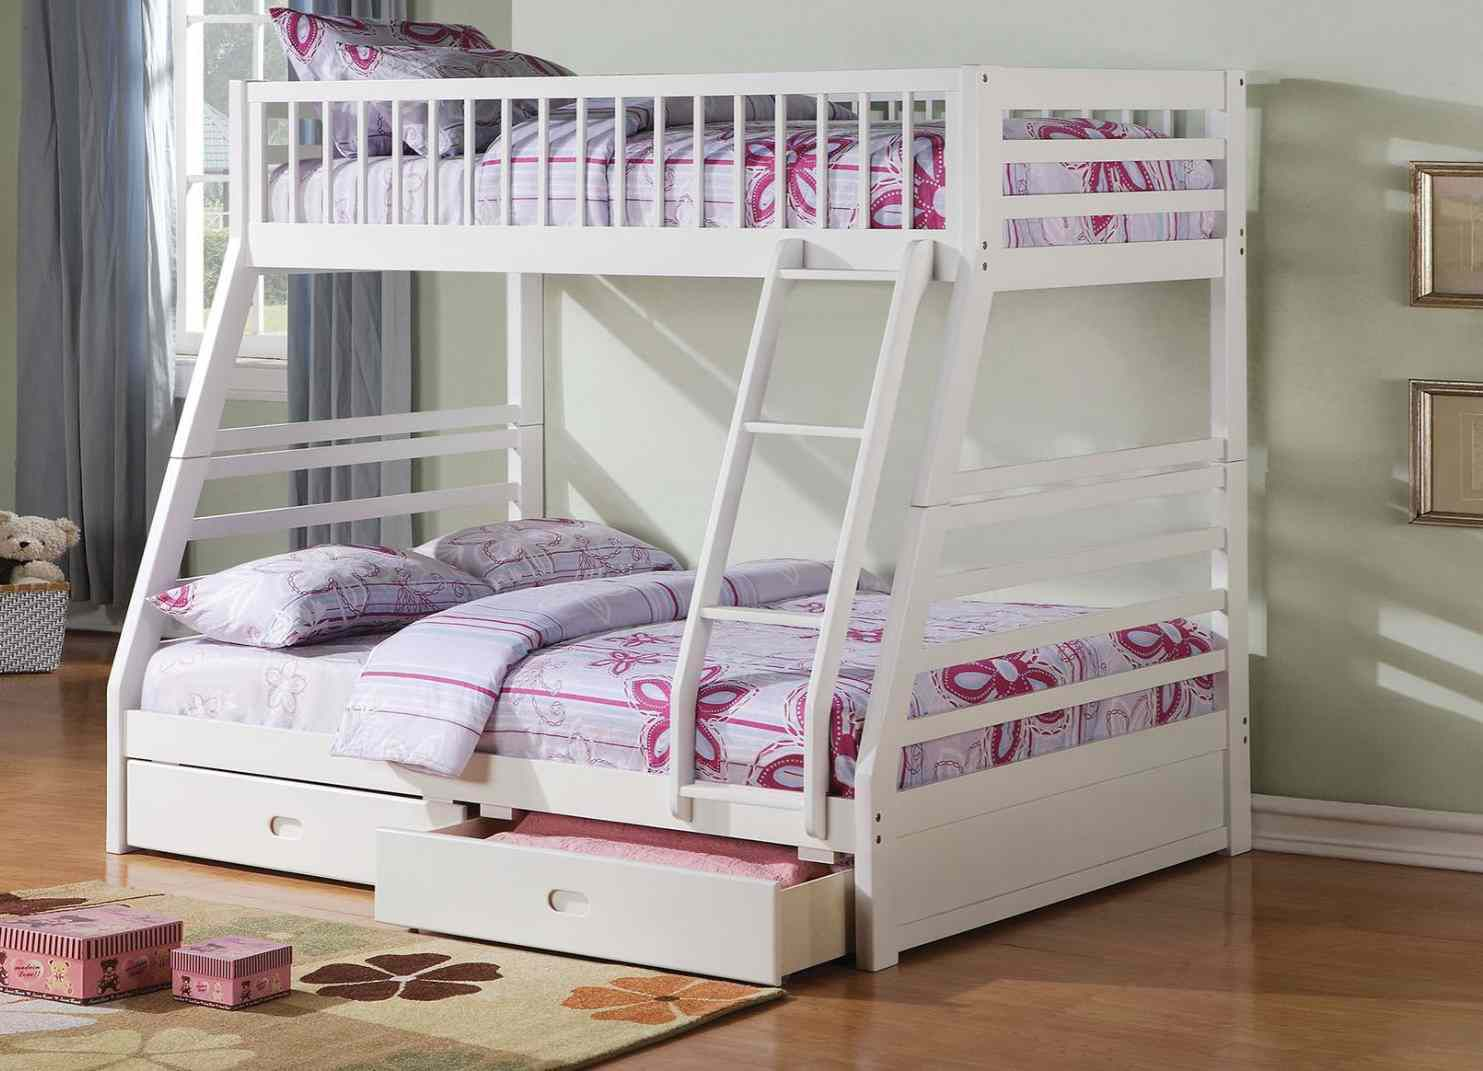 Twin/Full Bunk Bed AND Drawers - 37040 - White V1D 4